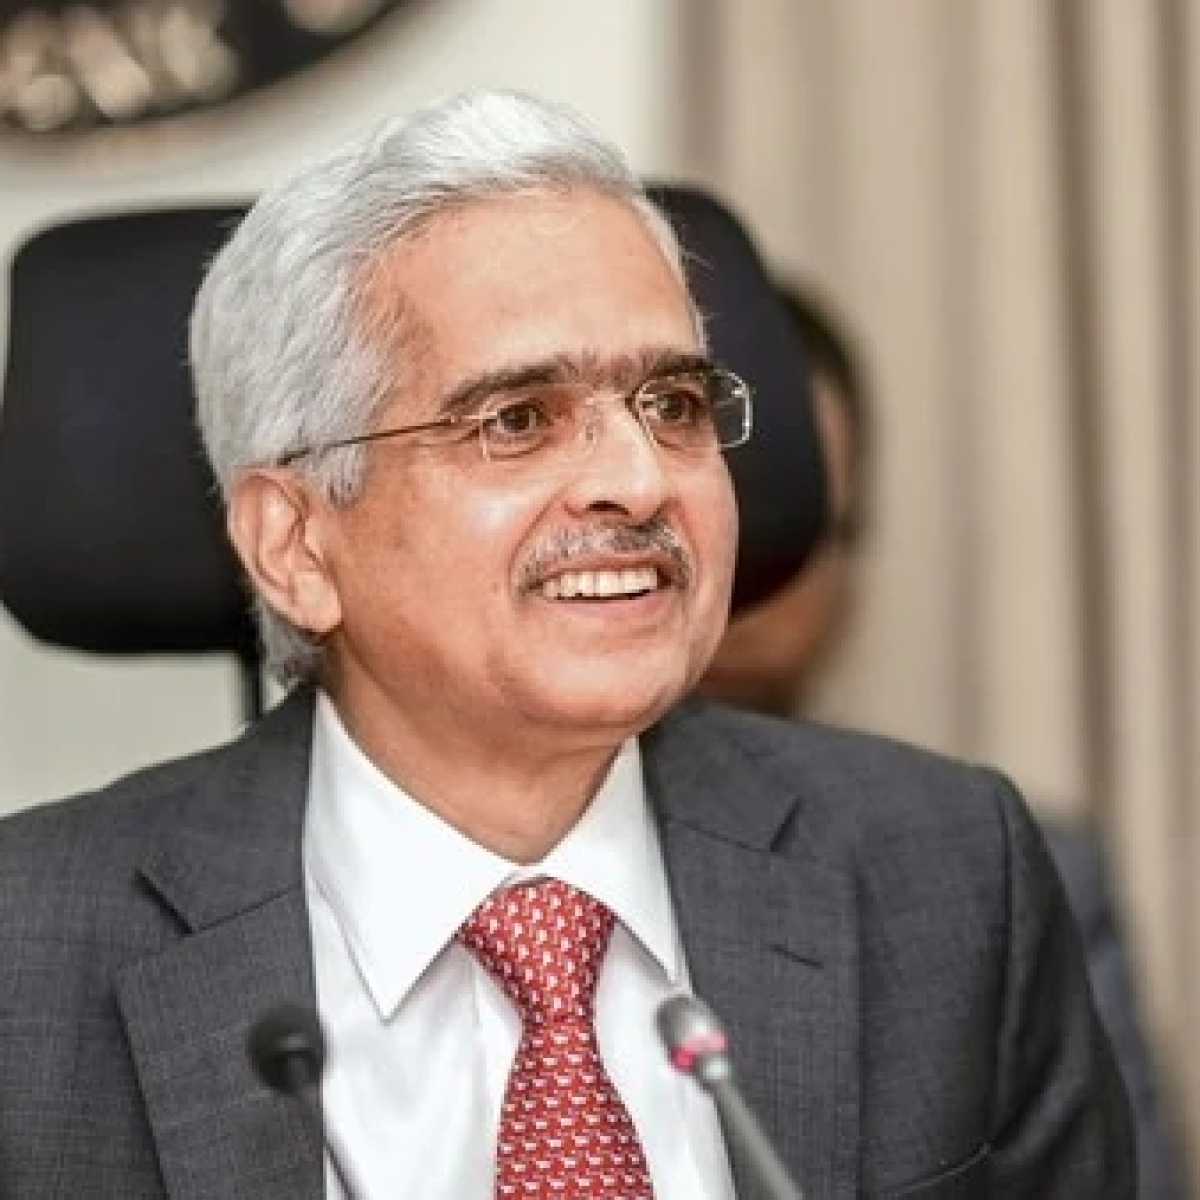 RBI saw growth slowdown, acted ahead of time by cutting rates from February: Shaktikanta Das